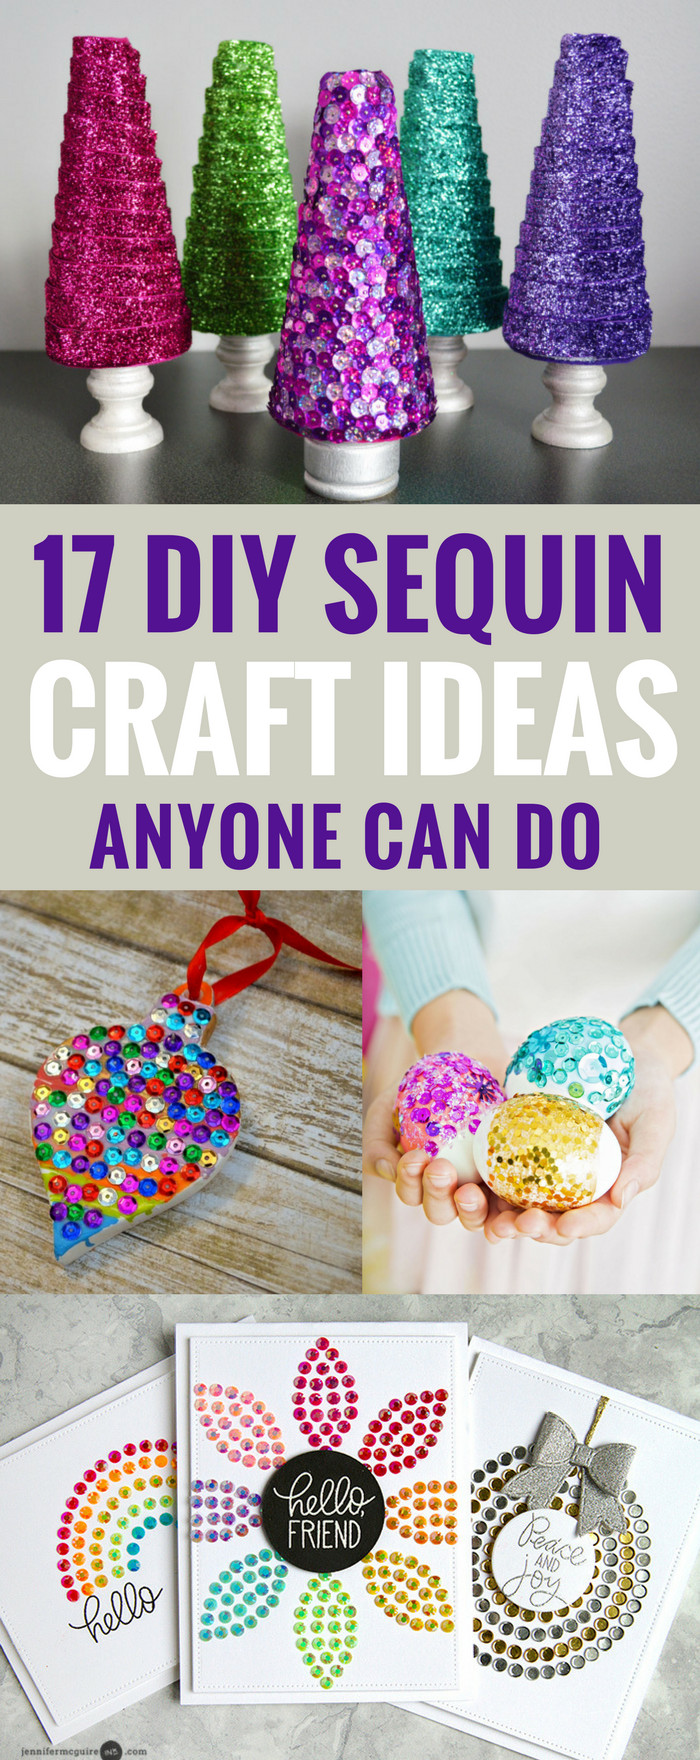 DIY Craft Ideas For Kids  17 DIY Sequin Crafts Ideas Anyone Can Do